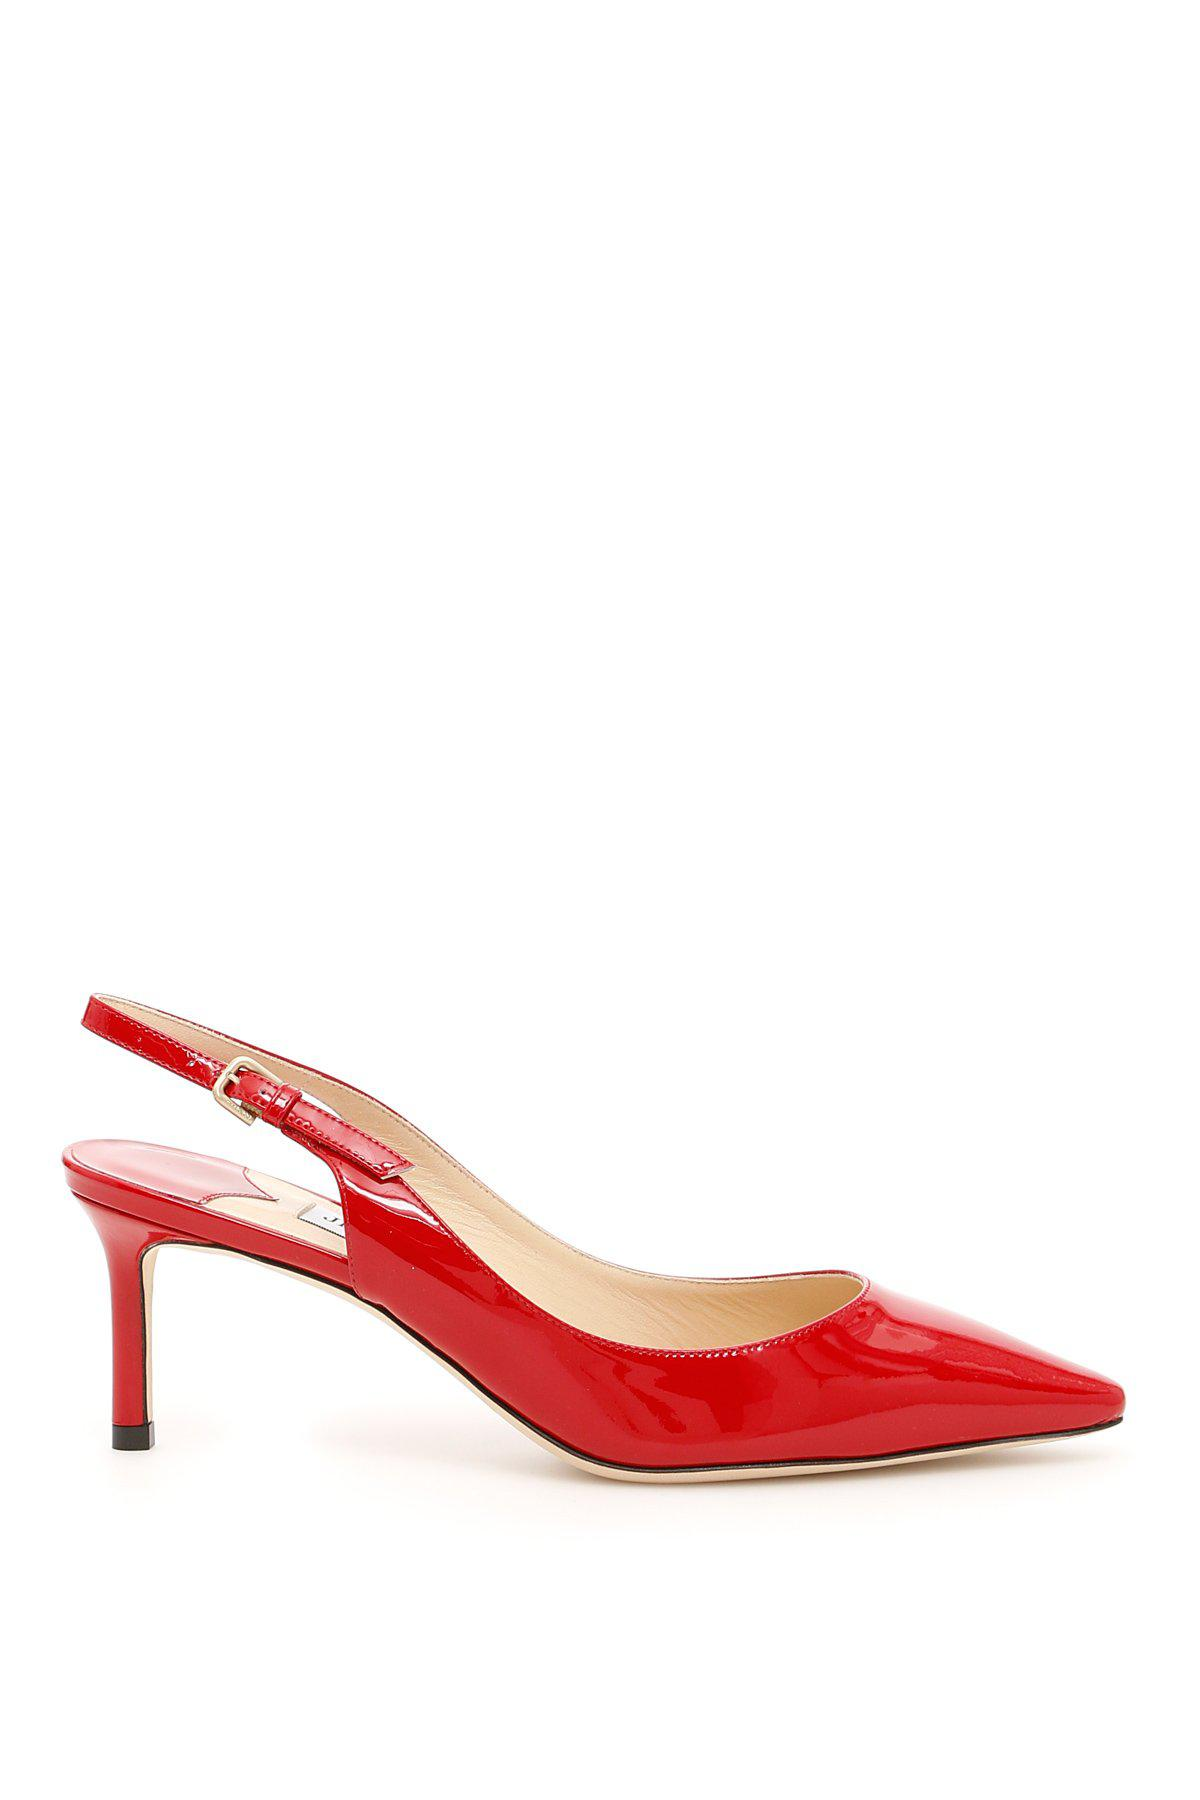 10987eab4d2 Lyst - Jimmy Choo Erin 60 Slingback Pumps in Red - Save 64%